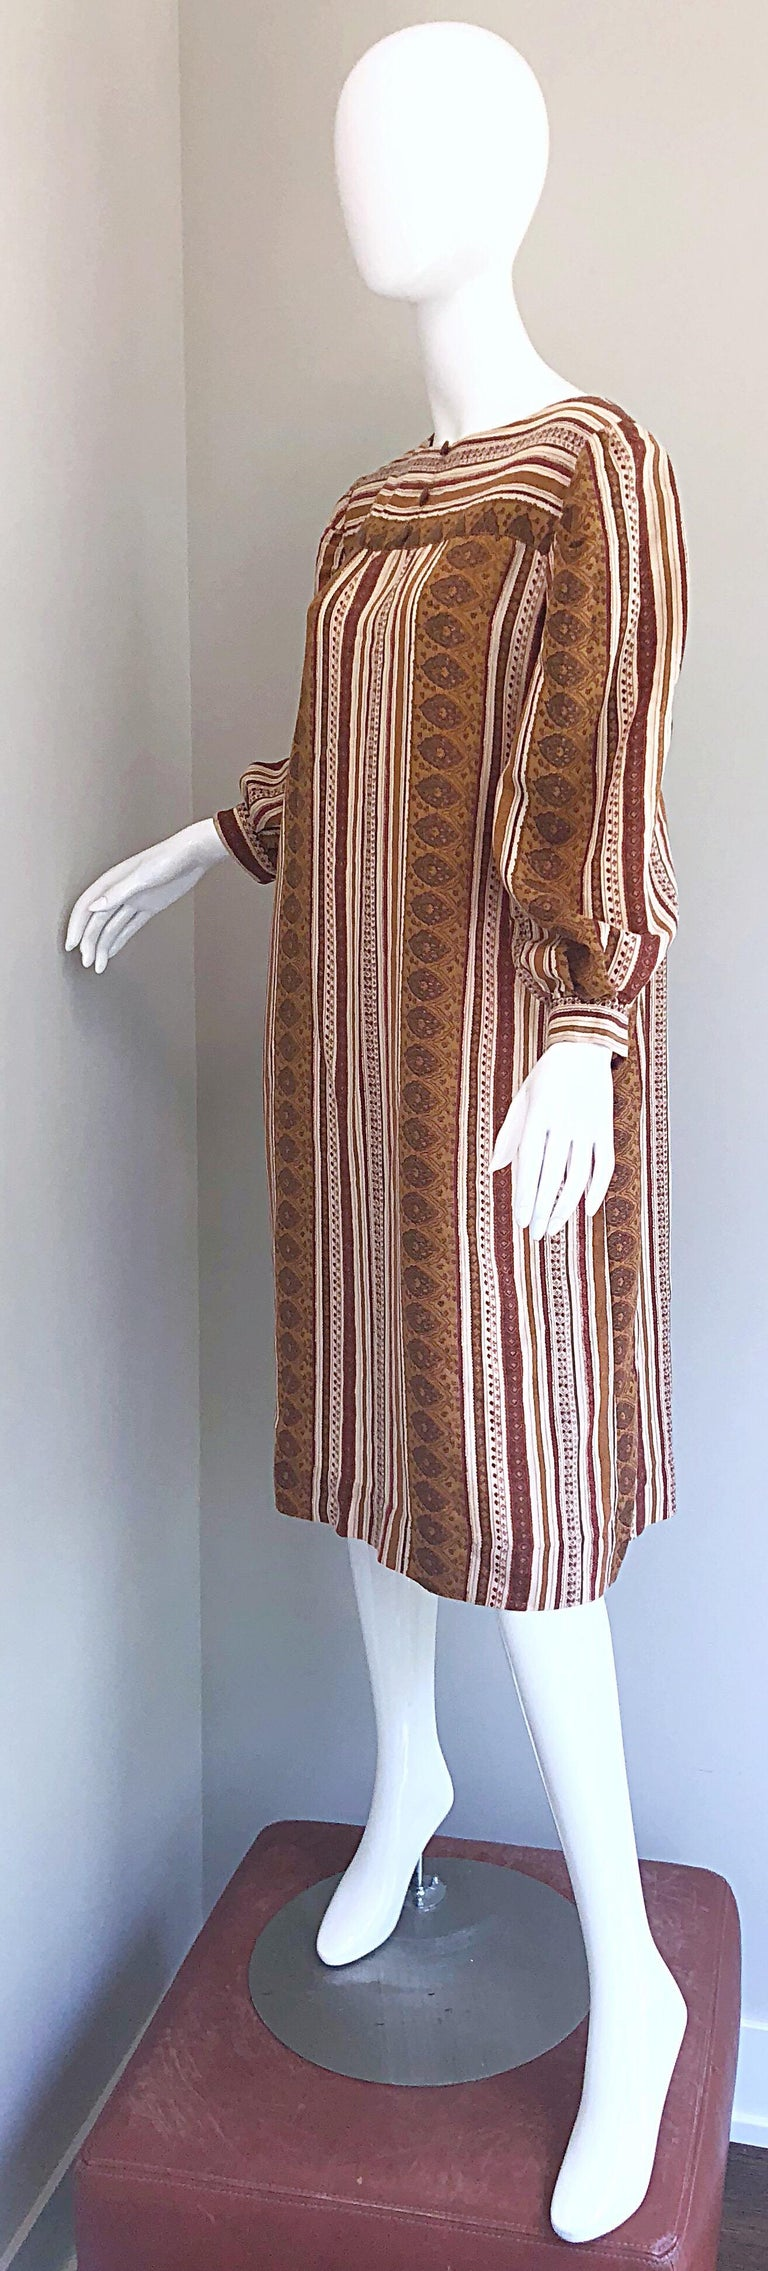 1970s Boho Chic Brown and Ivory Soft Cotton Paisley Print Vintage 70s Dress For Sale 5